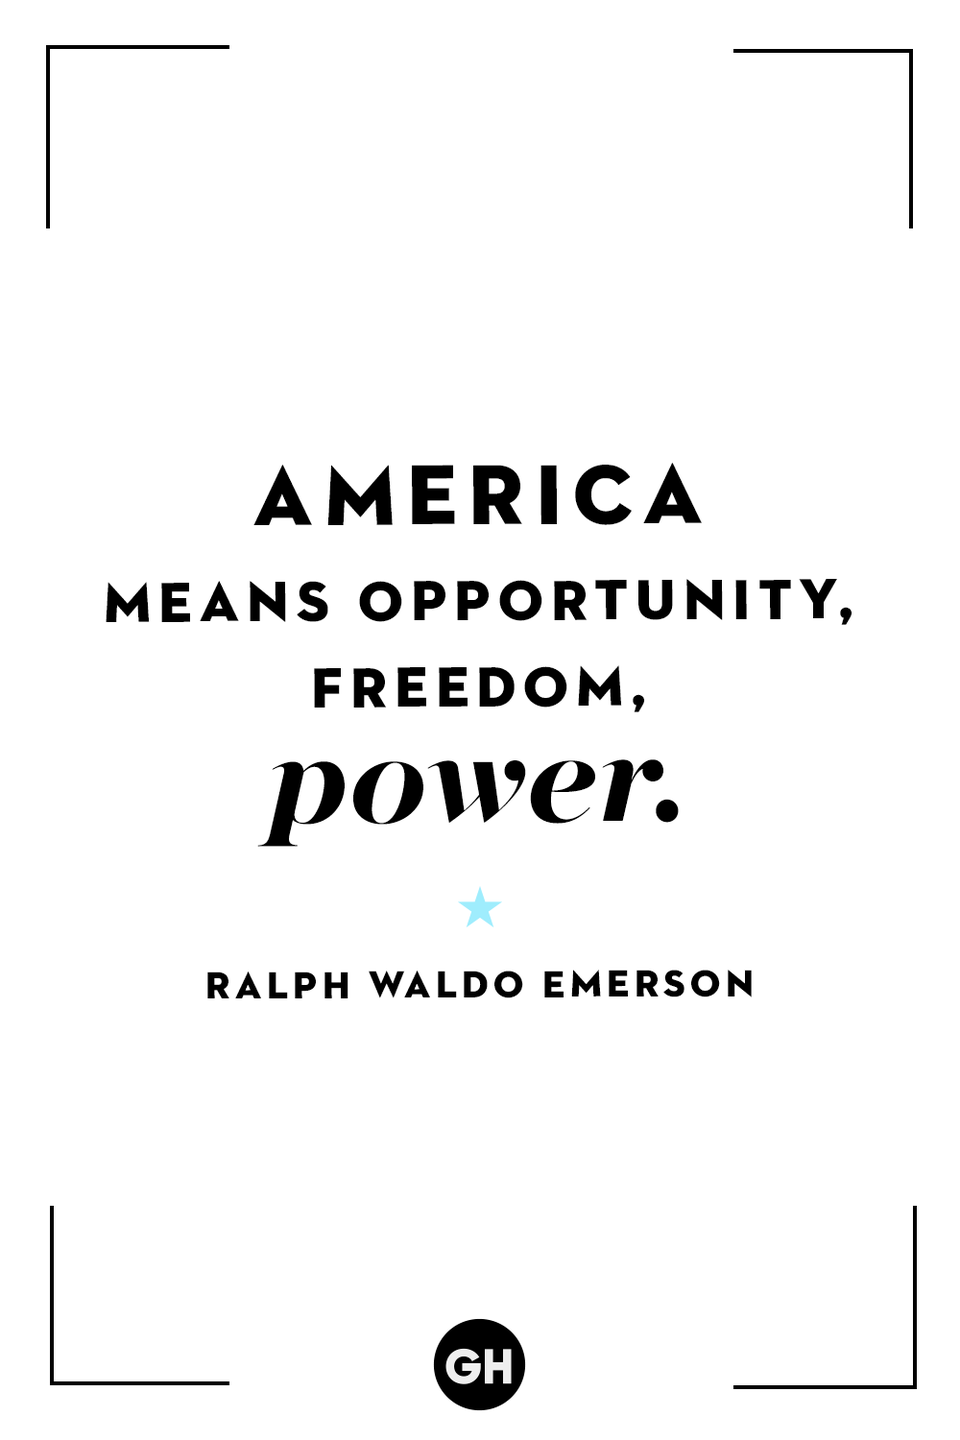 <p>America means opportunity, freedom, power.</p>